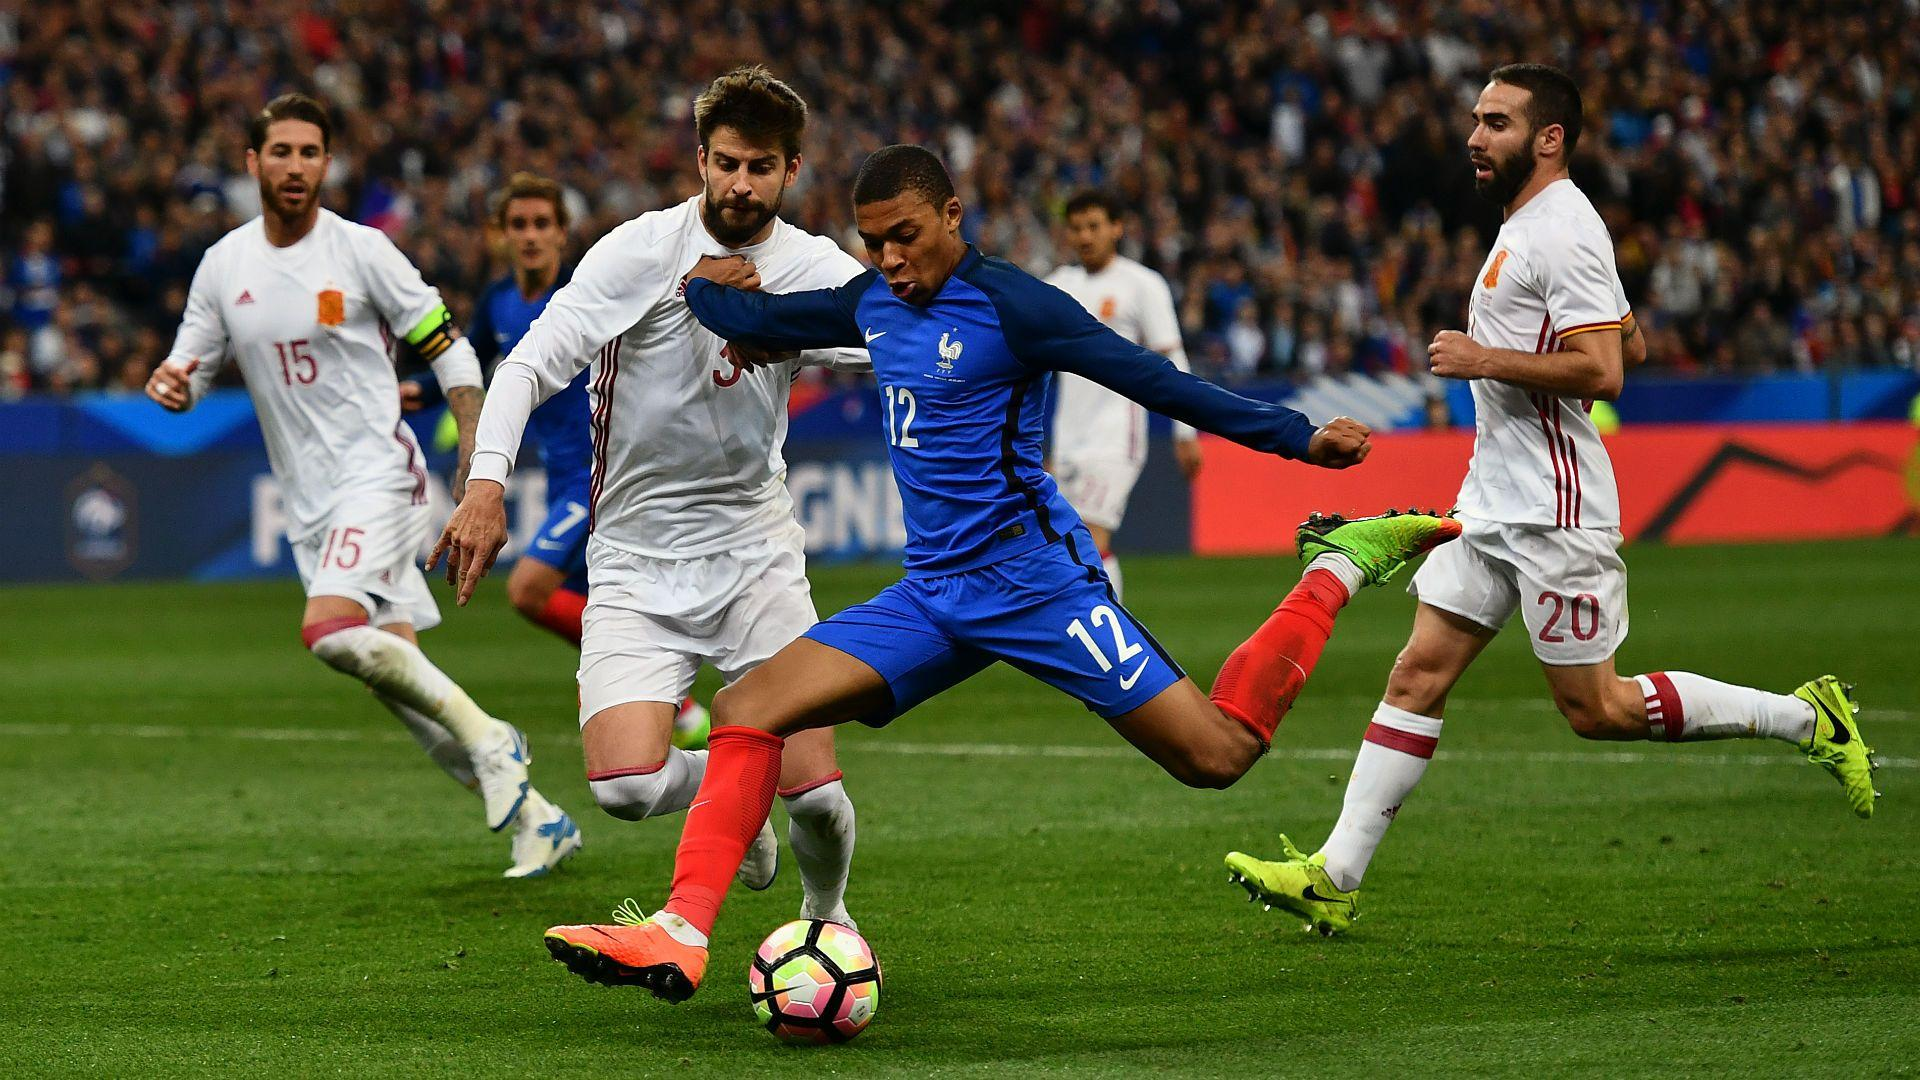 Mbappe to be included in France U20 squad | INTERNATIONAL-FRIENDLIES ...